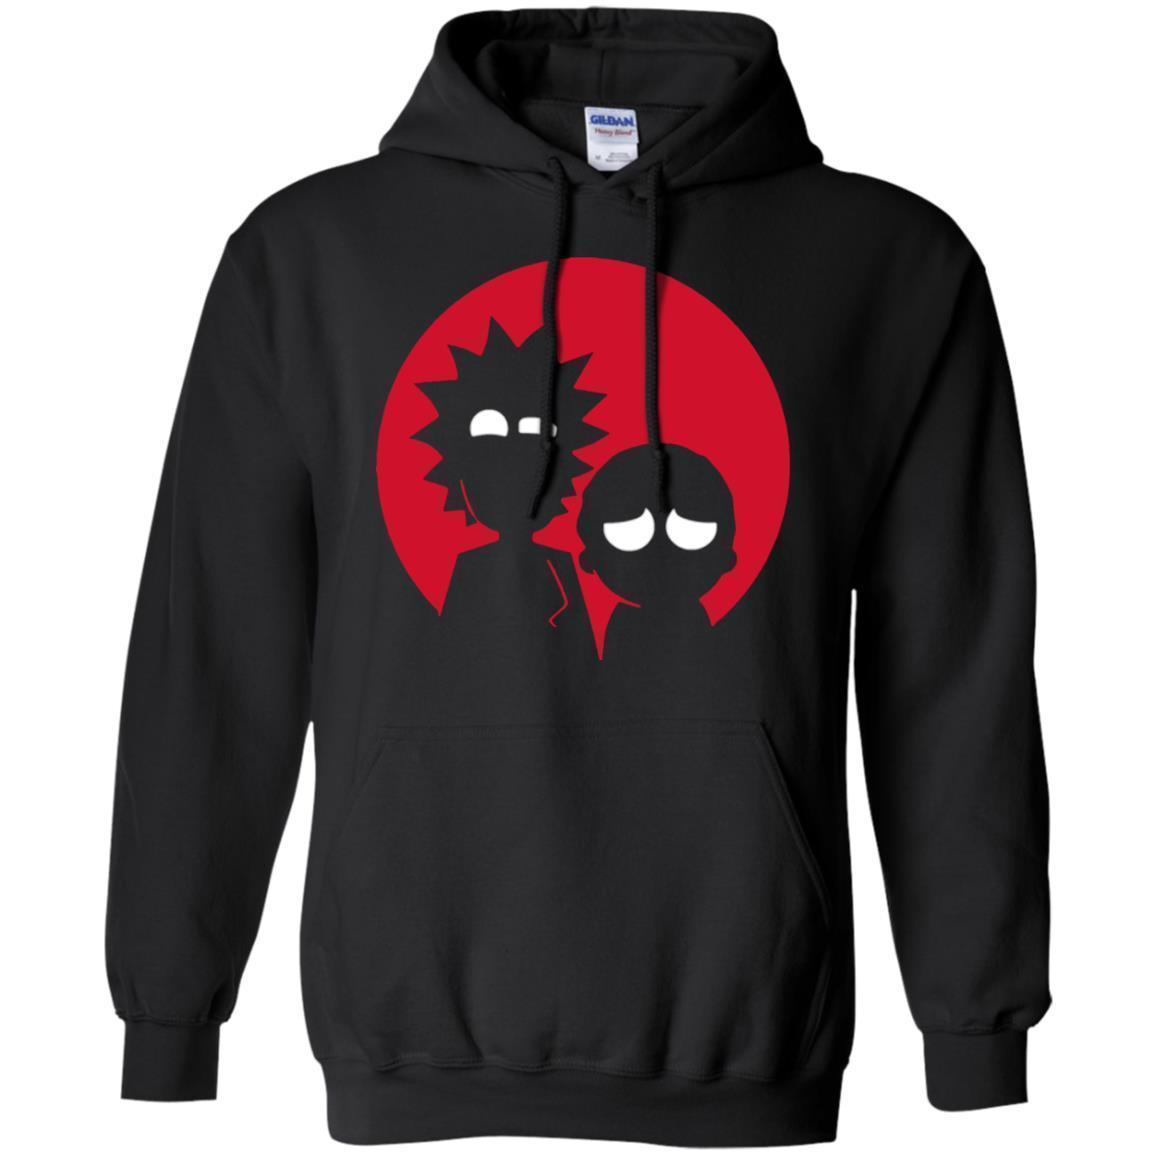 Minimalist Characters Rick And Morty Hoodie